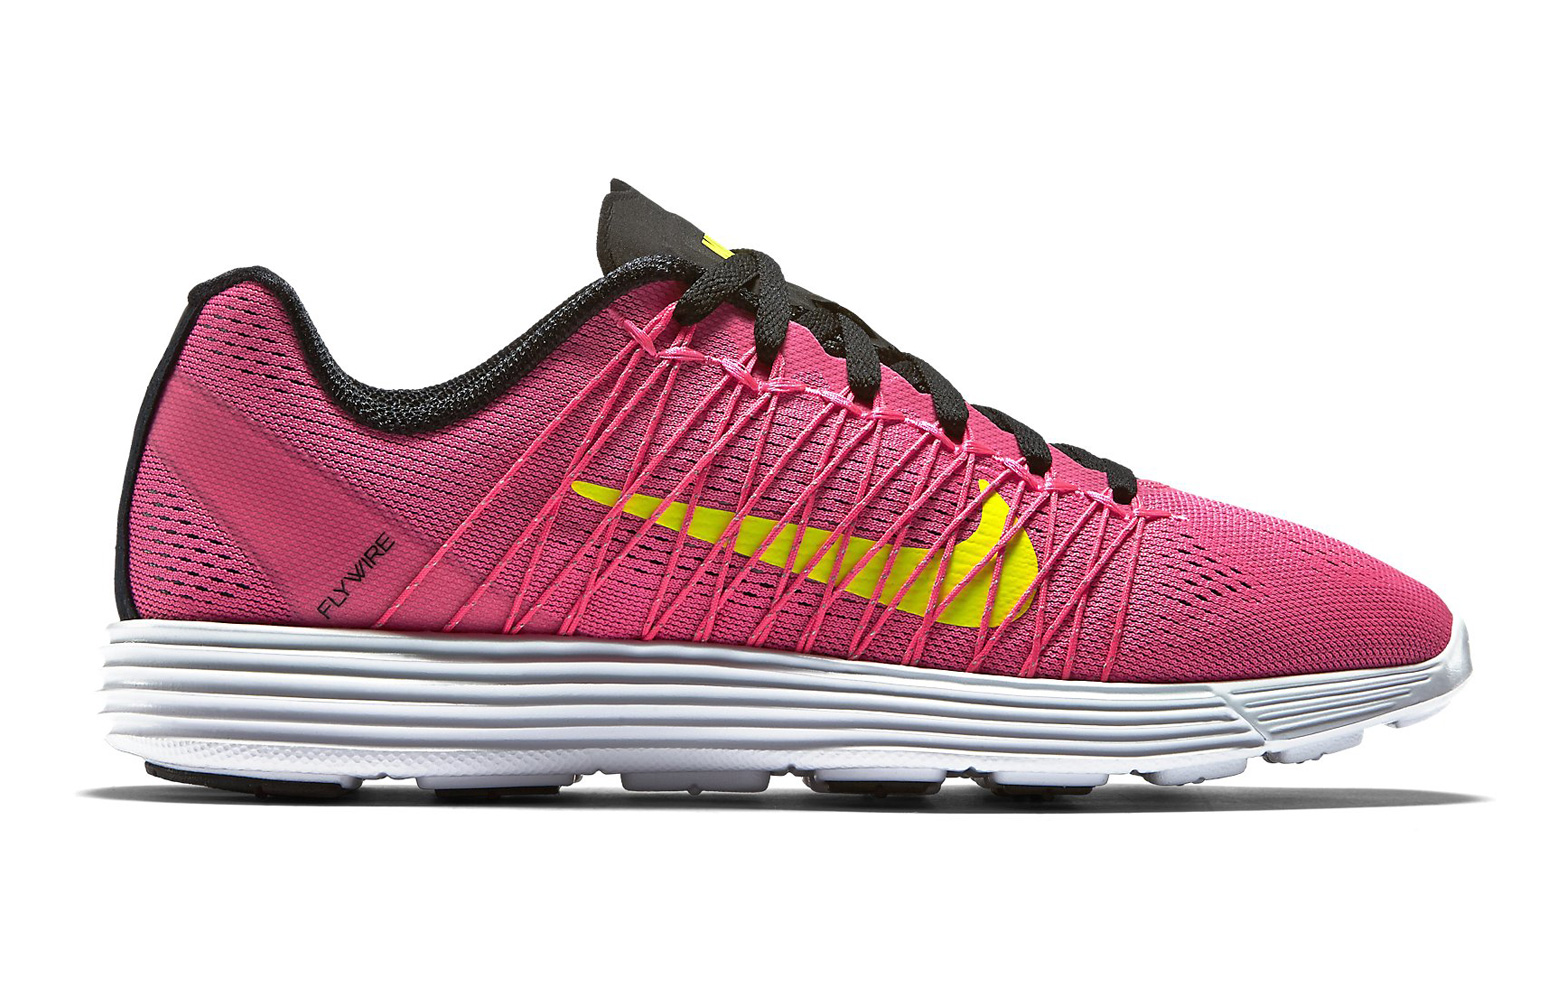 the best attitude 61b9a ccbc0 NIKE Shoes LUNARACER+ 3 Pink Yellow Women